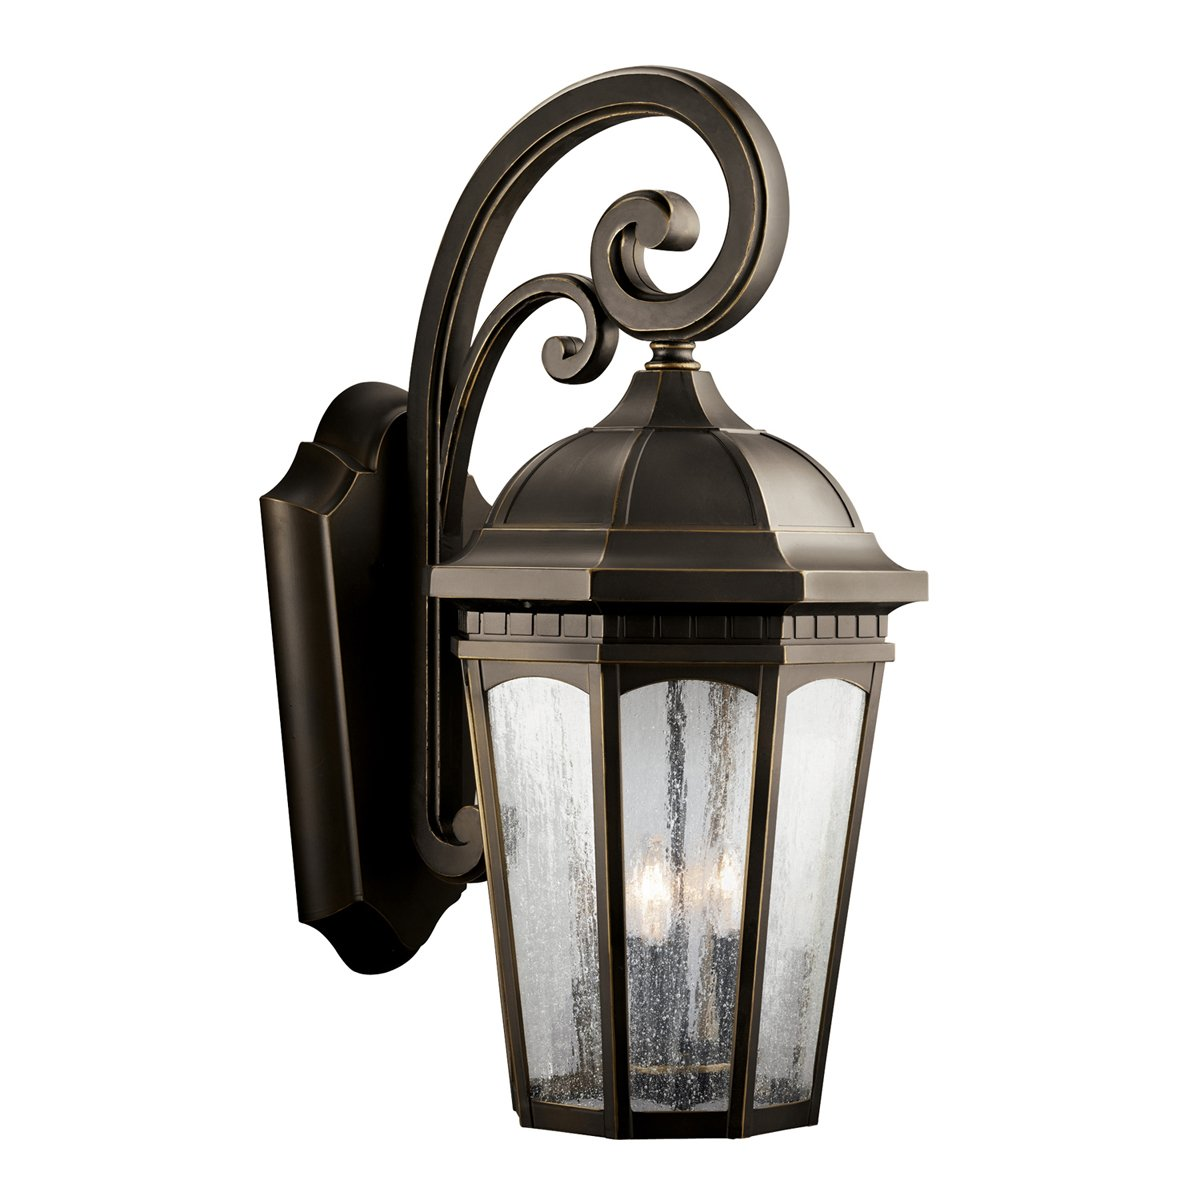 Kichler Lighting 9032BKT Courtyard 1 Light 11 Inch Outdoor Wall Lantern  with Etched Seedy Glass  Textured Black Finish   Wall Porch Lights    Amazon comKichler Lighting 9032BKT Courtyard 1 Light 11 Inch Outdoor Wall  . Kichler Lighting Outdoor Sconce. Home Design Ideas